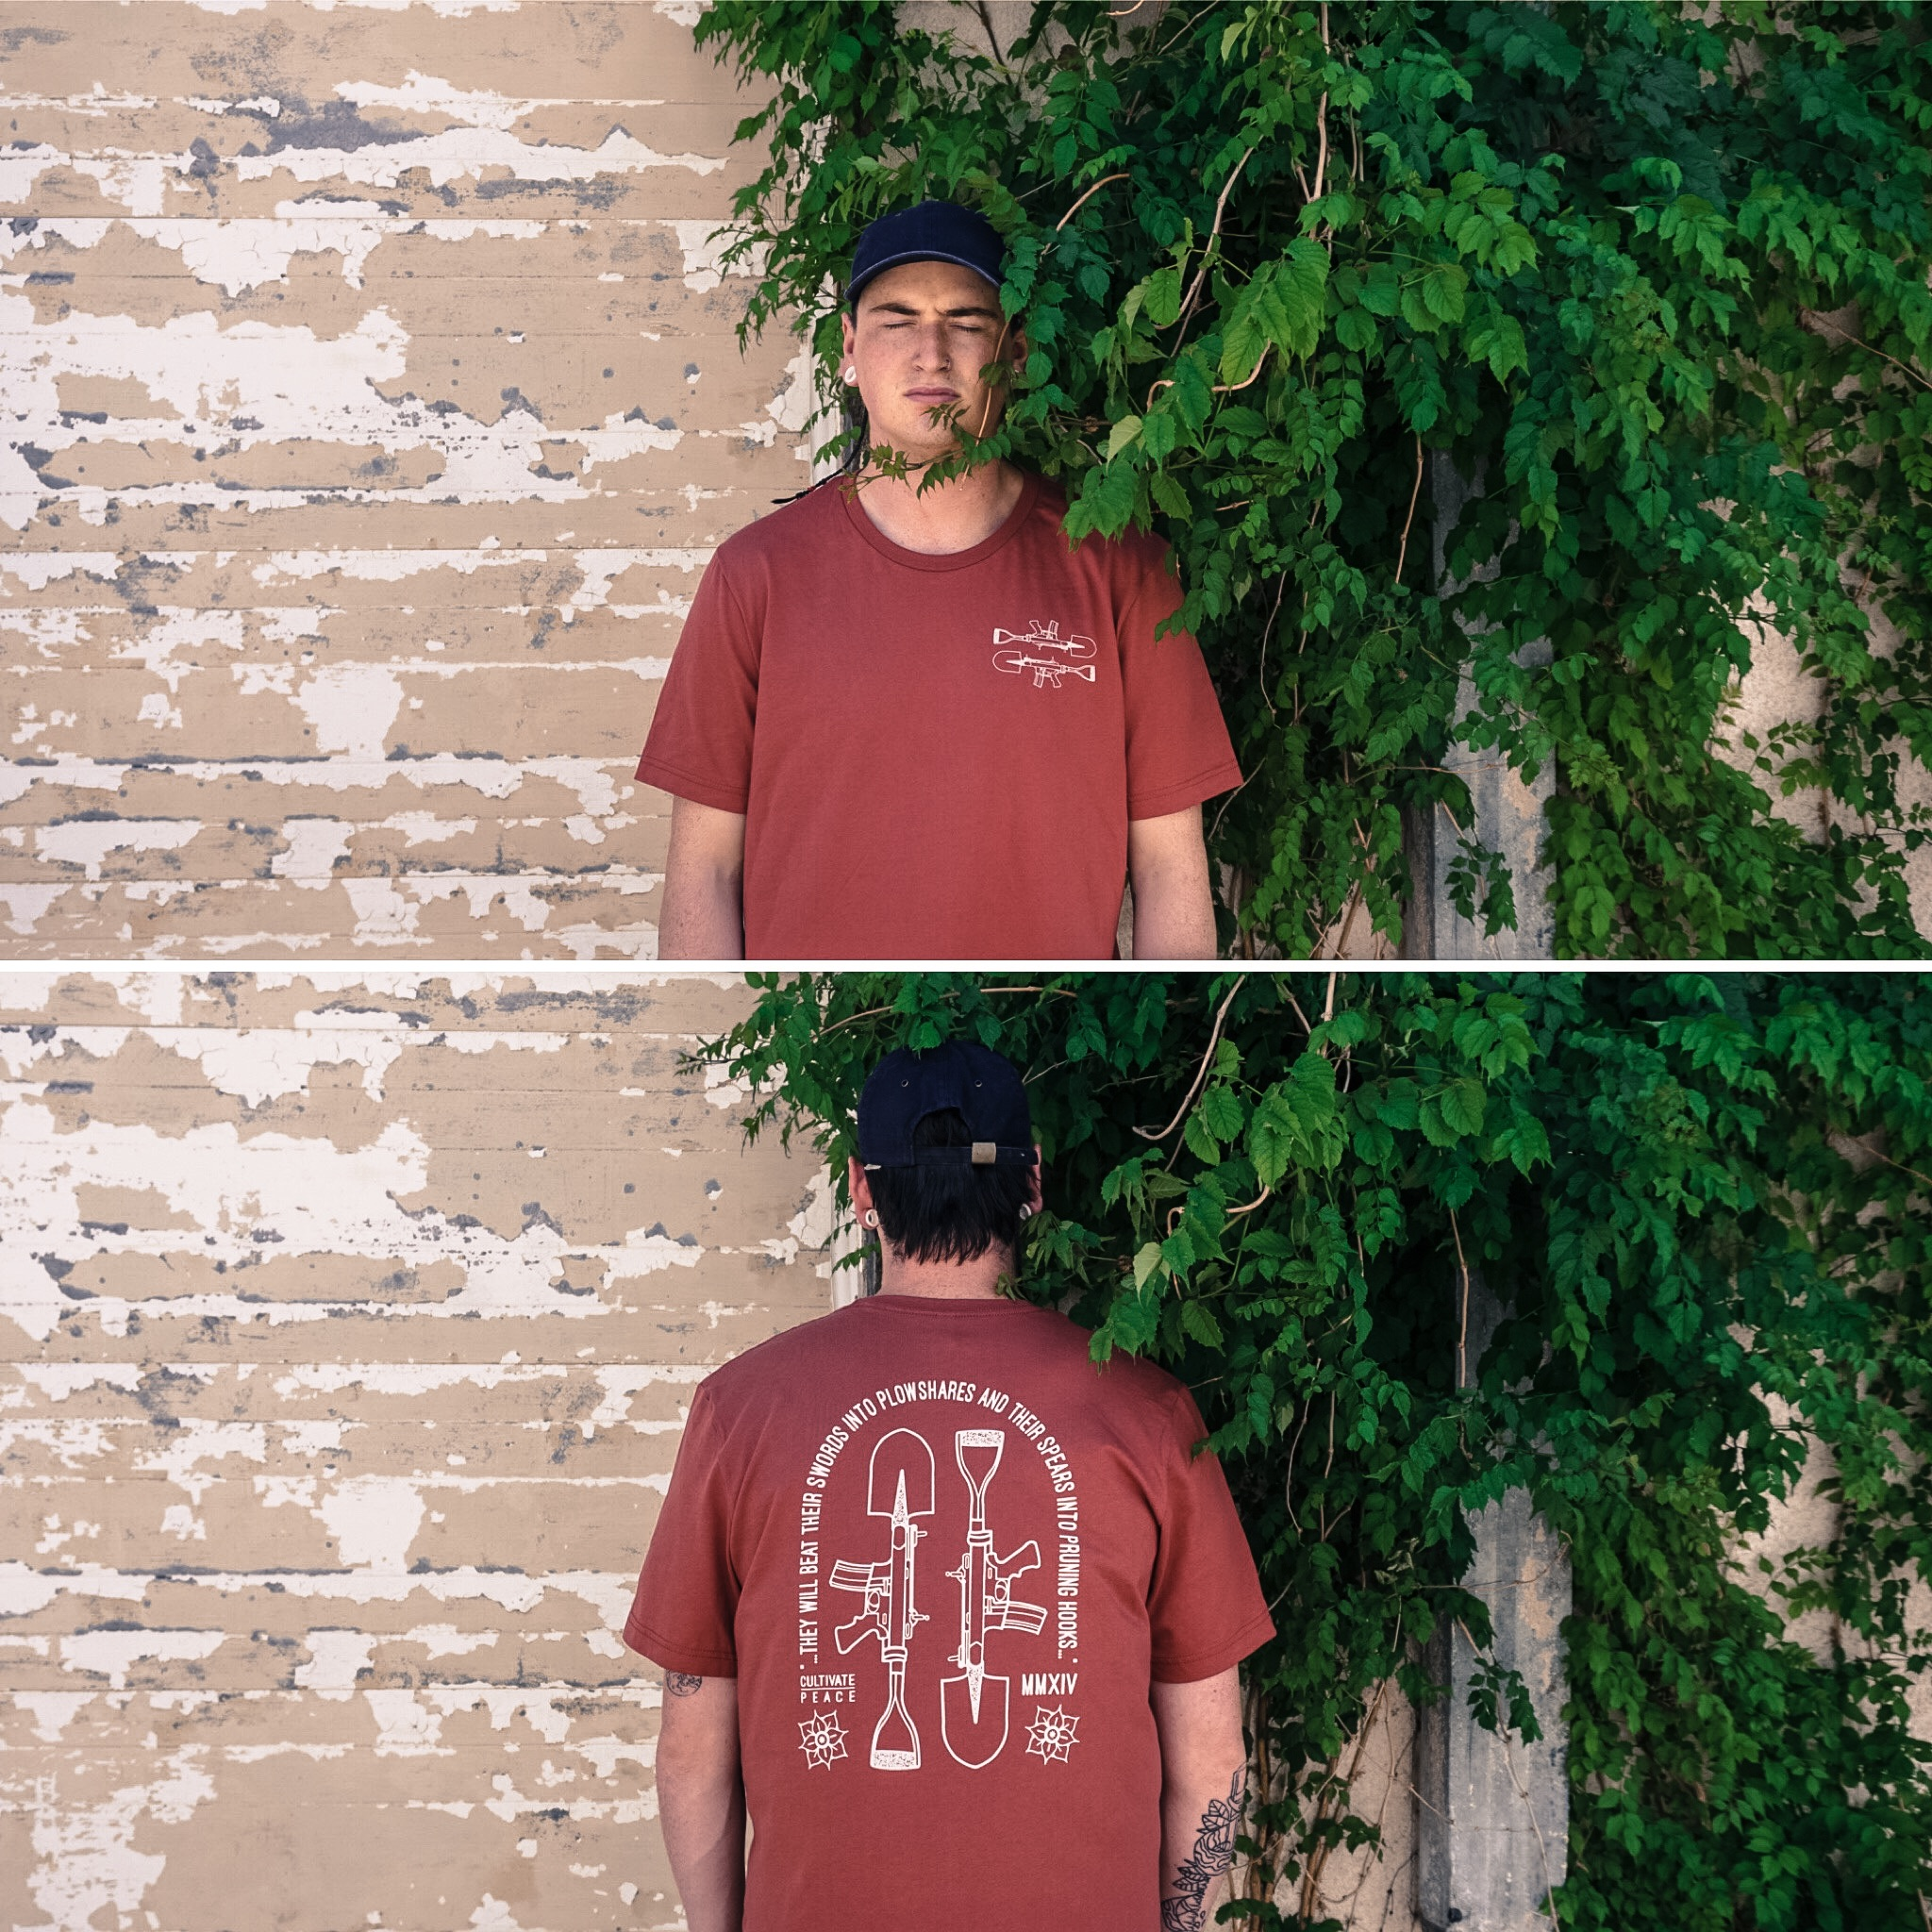 Eric (one of our printers) models the Cultivate Peace shirt in our alley.